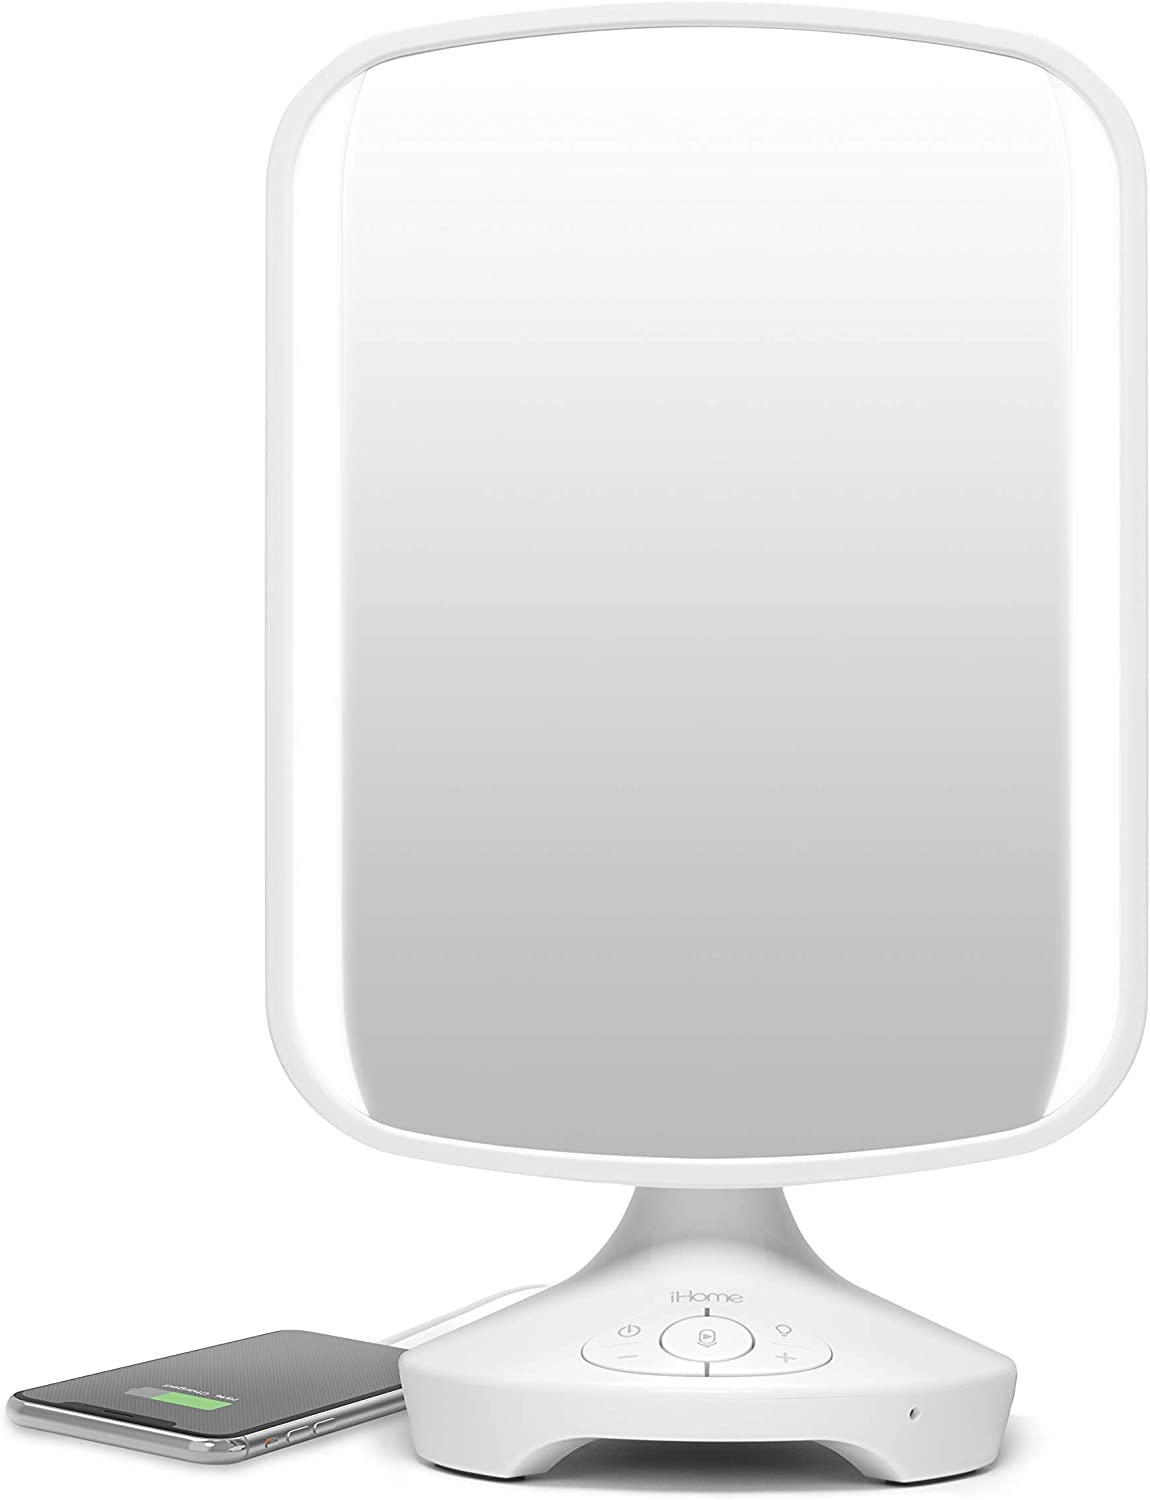 iHome 7 x 9 Reflect ll iCVBT3 Adjustable Vanity Mirror, Makeup Mirror with Bluetooth Audio, Hands-Free Speakerphone, LED Lighting, Siri Google Support USB Charging, Flat Panel LED Lighting White